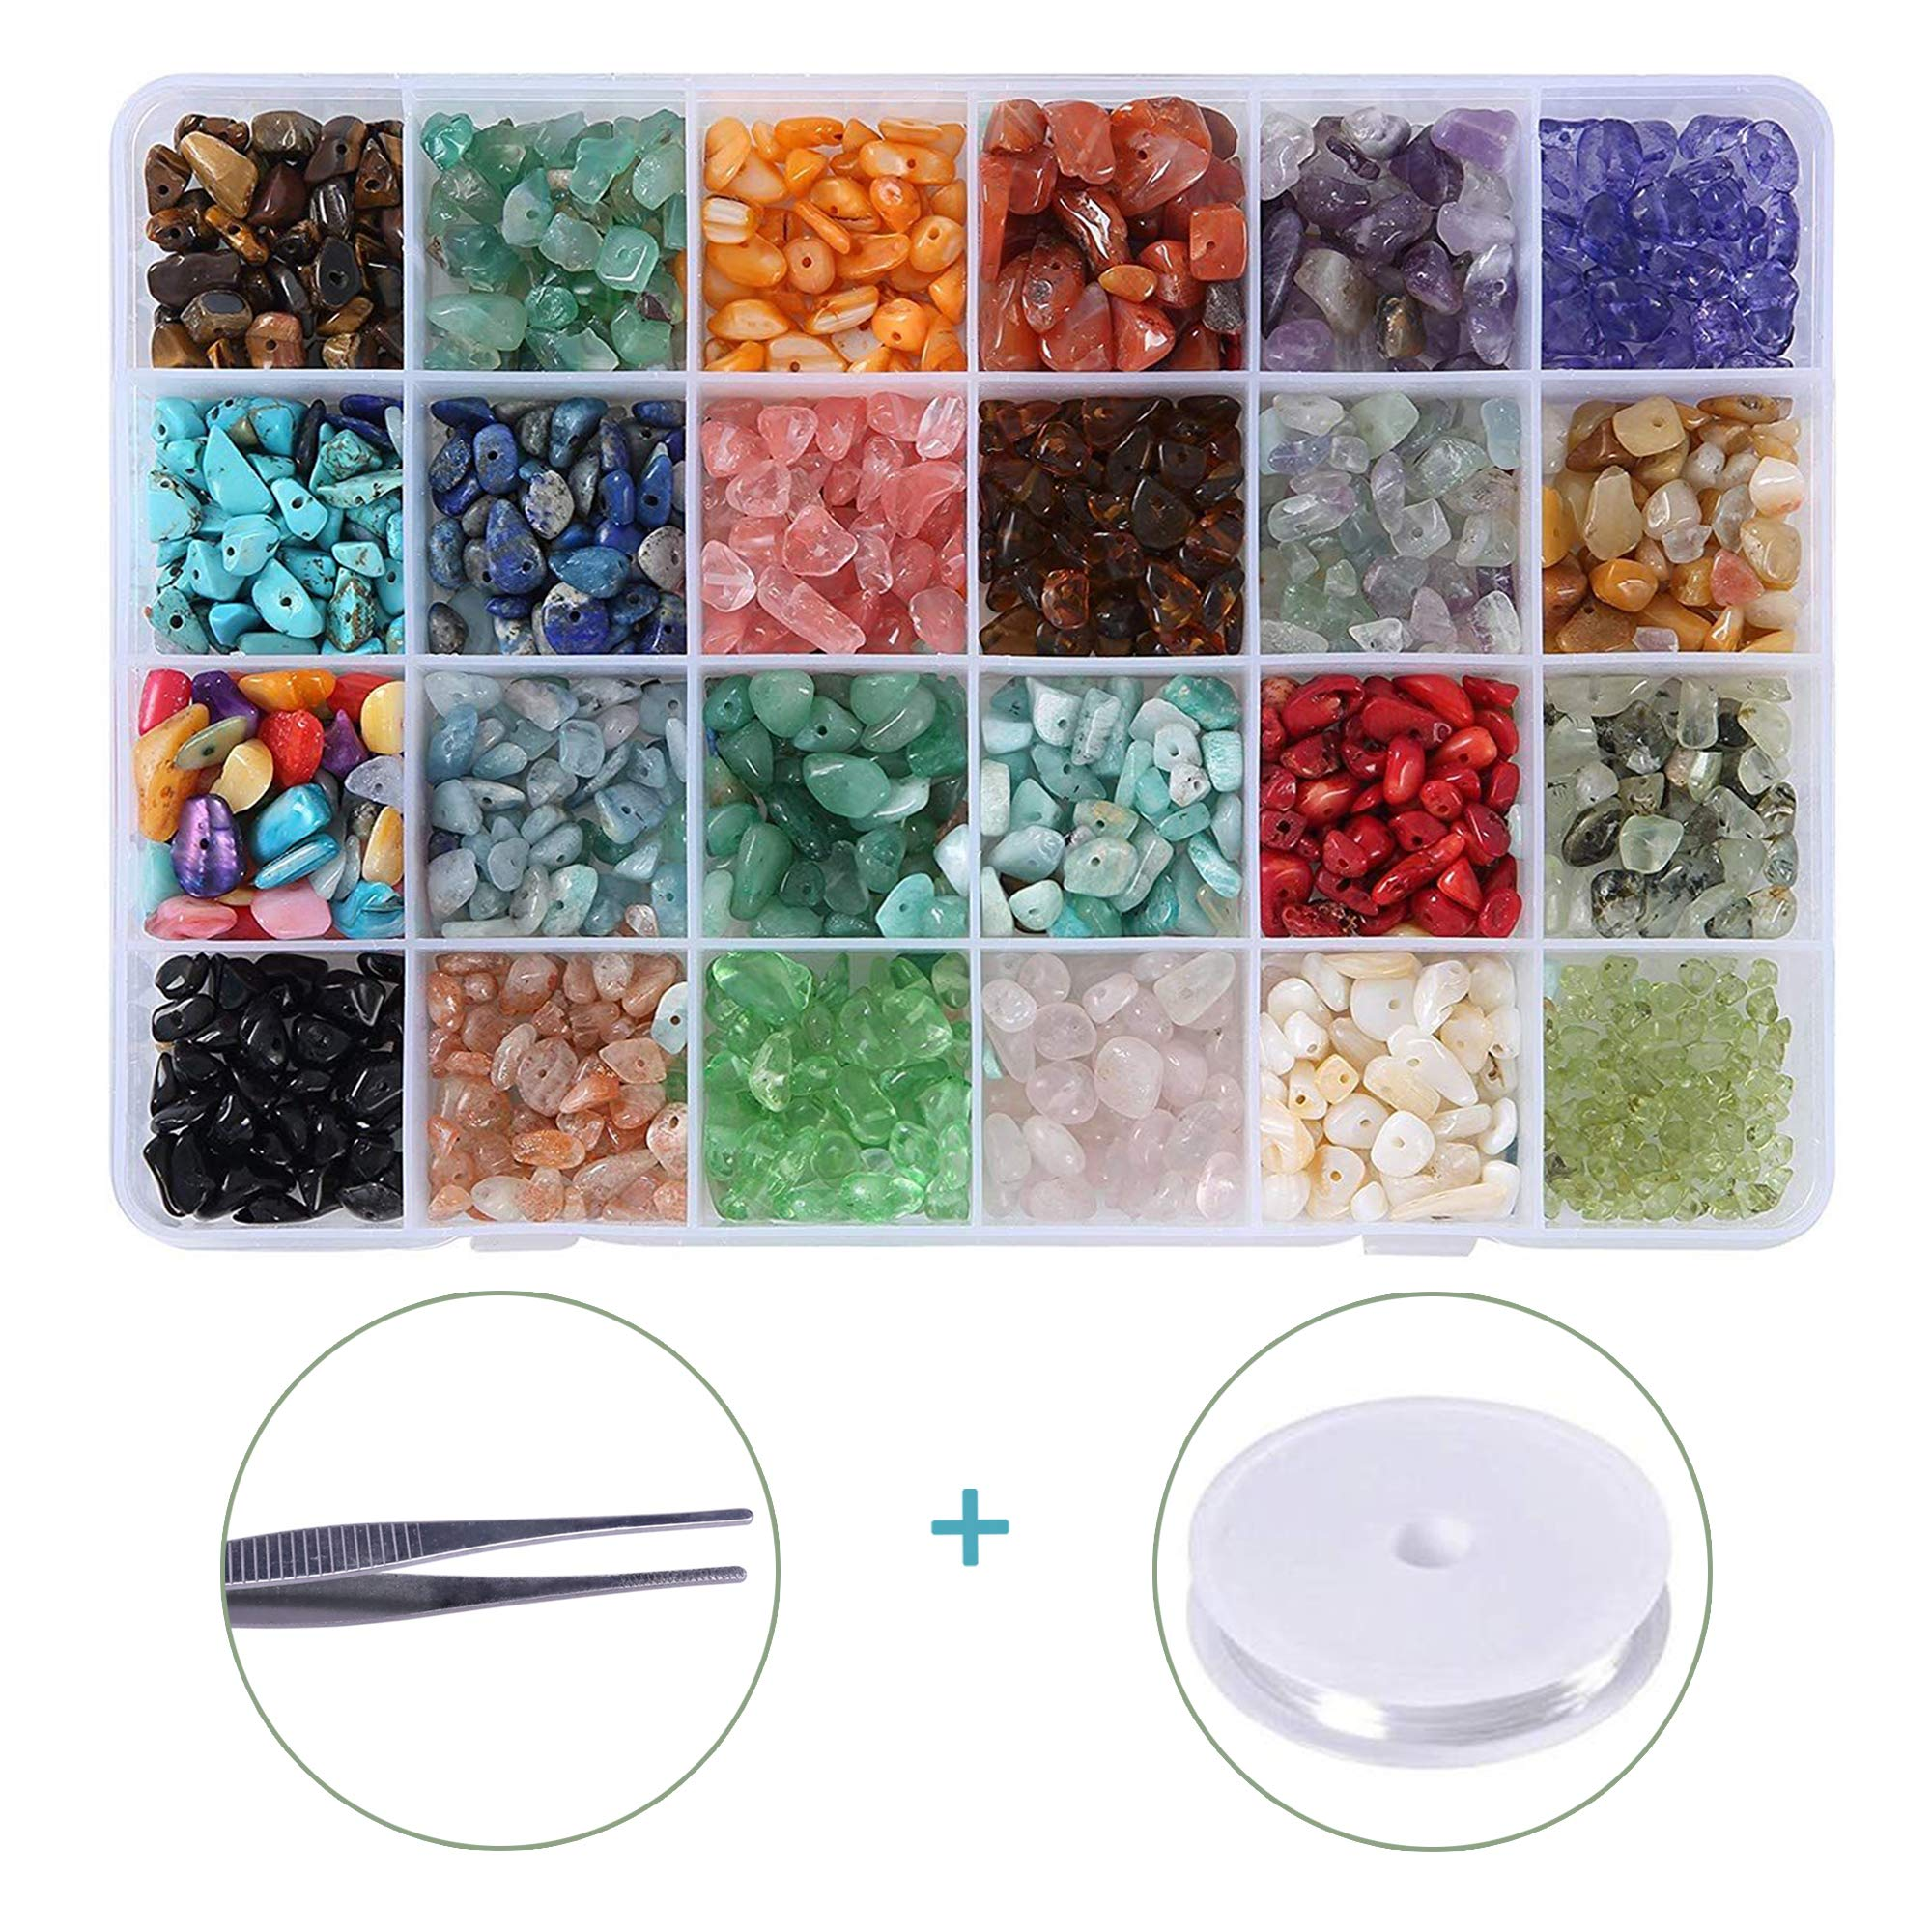 Efivs Arts 24 Stone Beads Natural Gemstone Beads Irregular Chips Stones Crushed Chunked Crystal Pieces Loose Beads for Jewelry Making Decor DIY Crafts Gift for Mother's Day